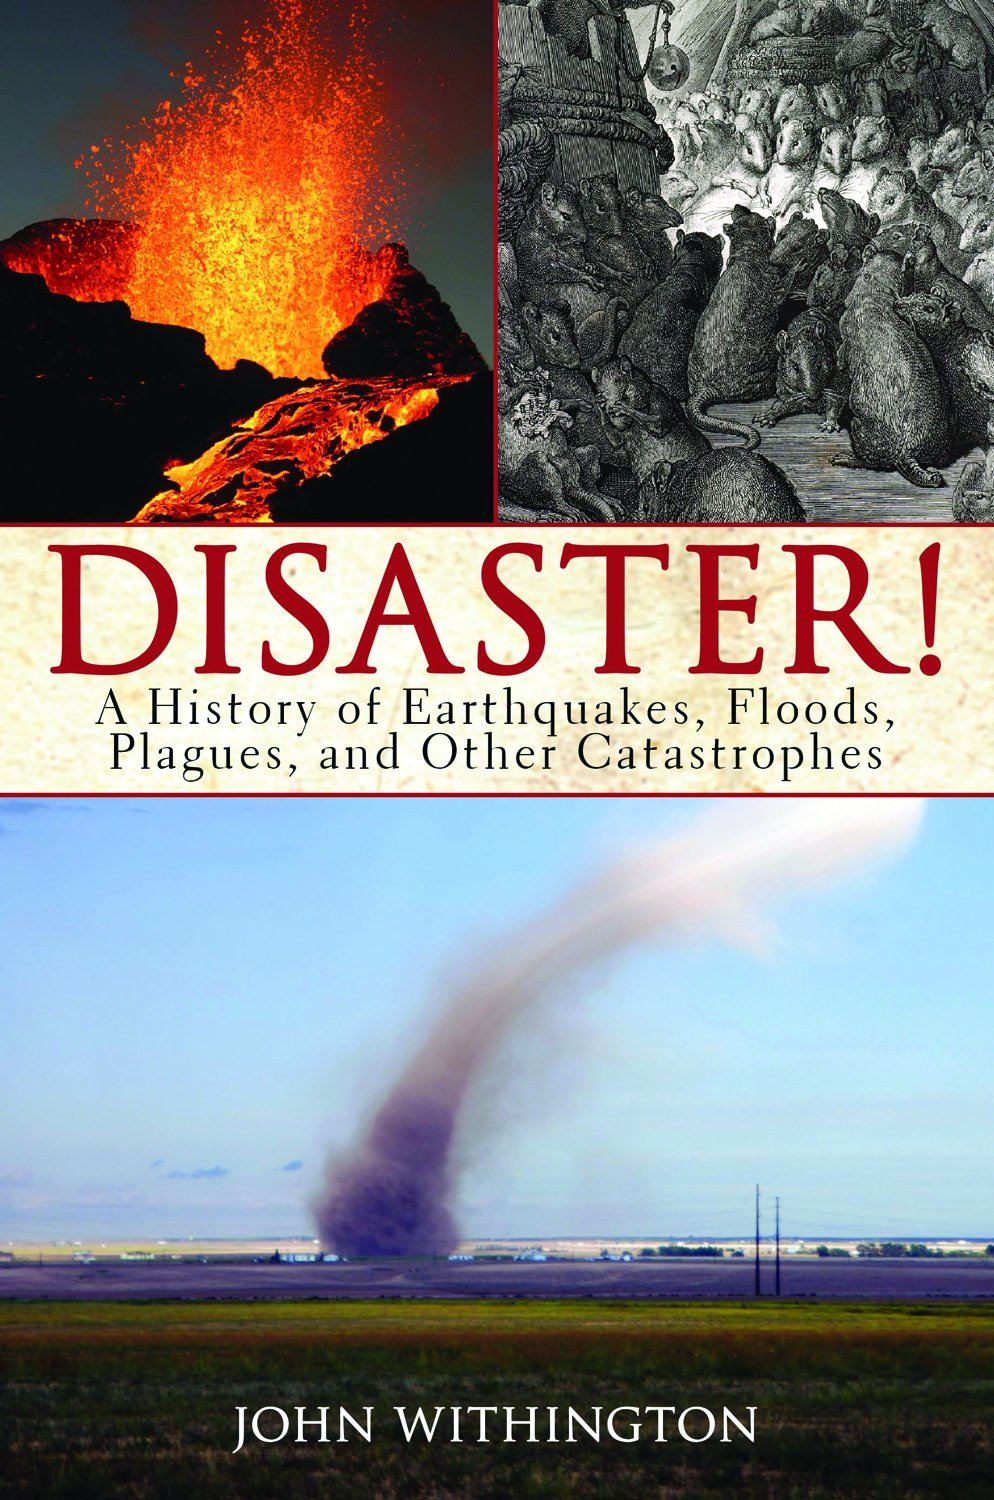 Disaster!: A History of Earthquakes, Floods, Plagues, and Other Catastrophes